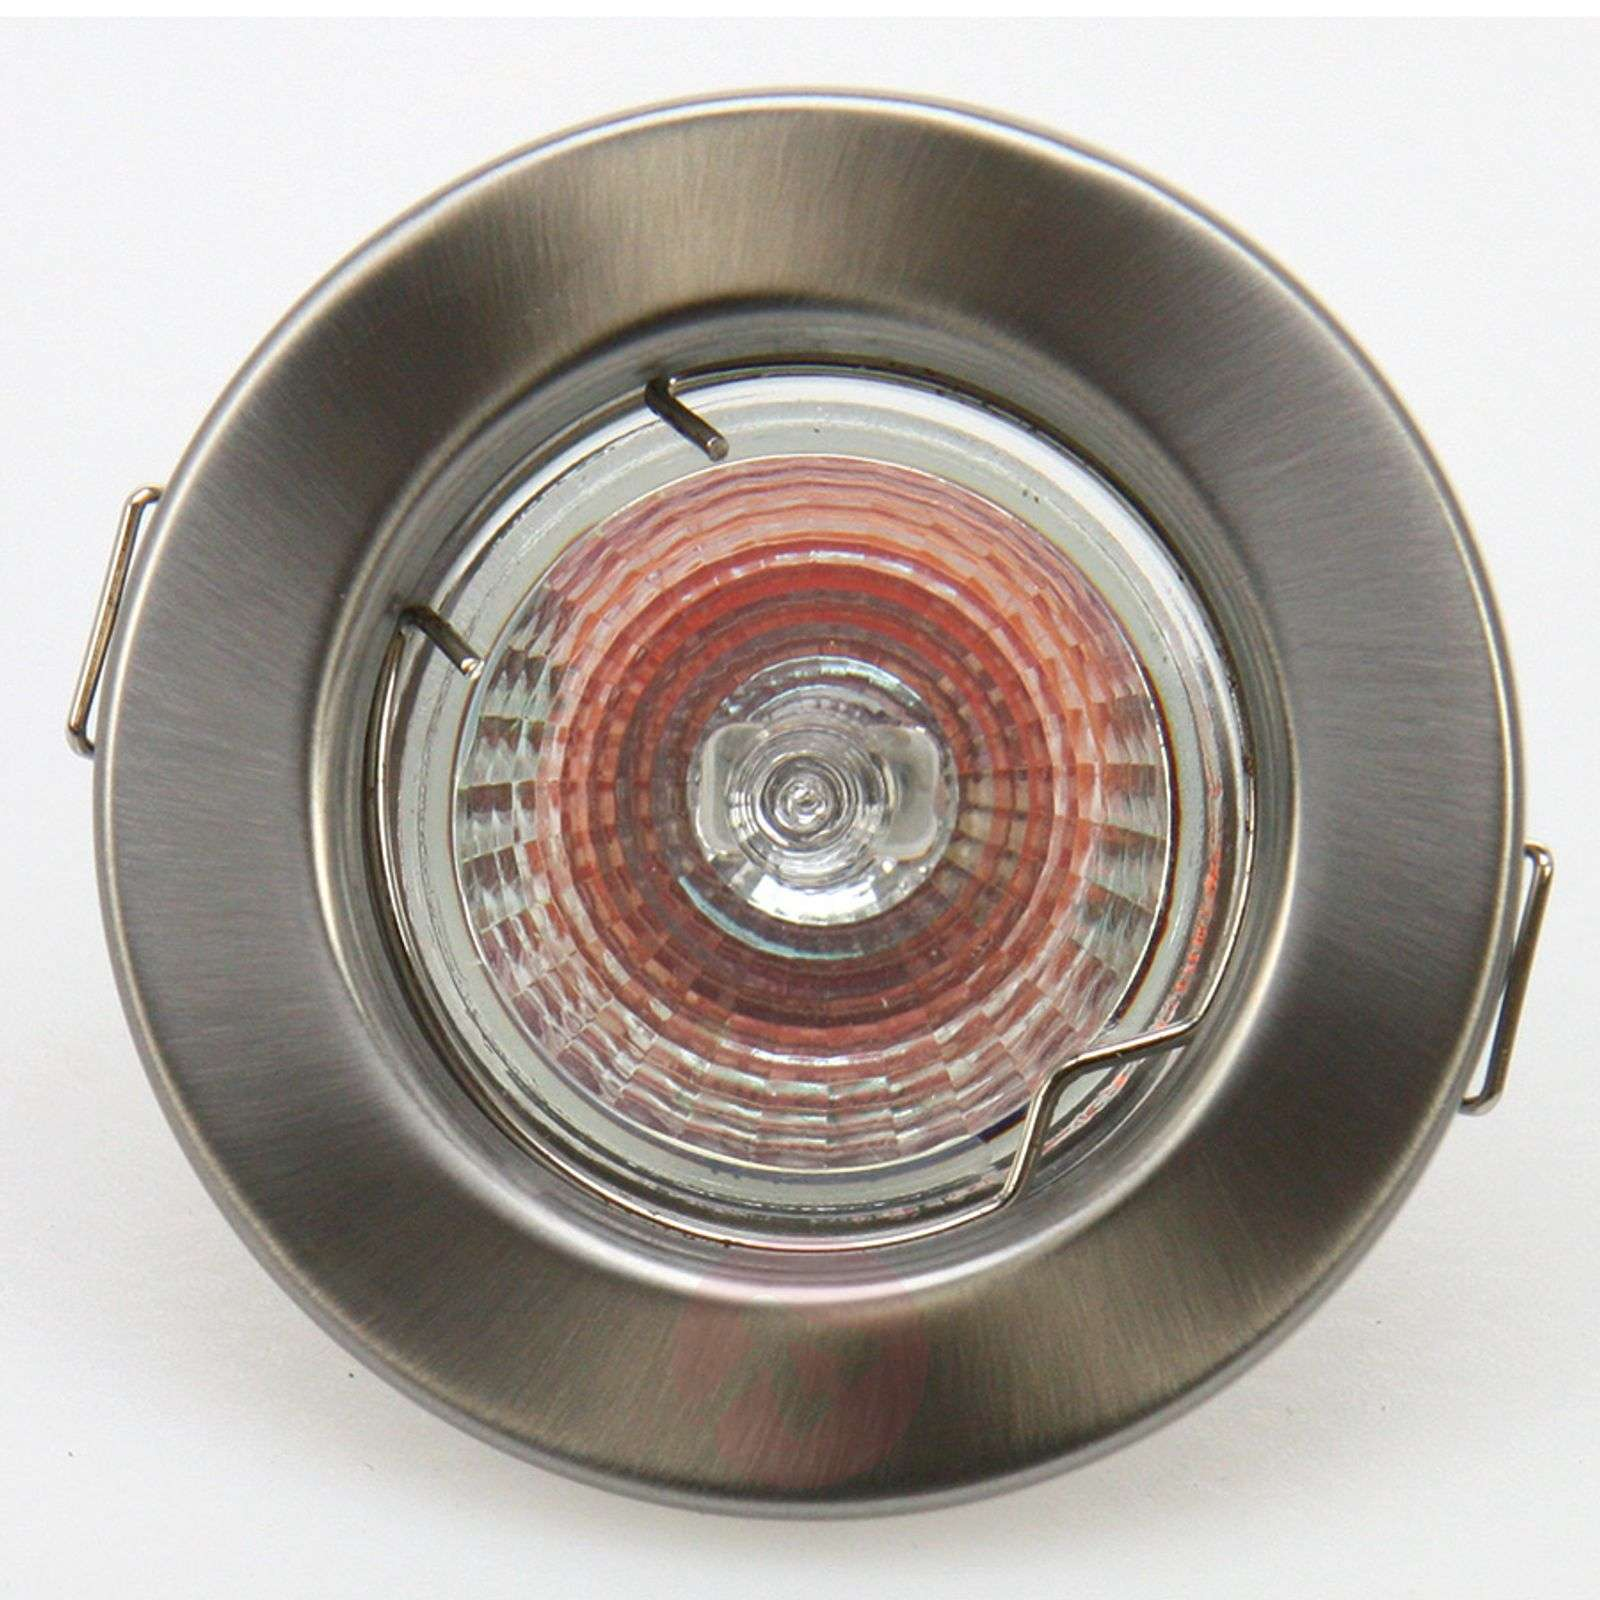 Low voltage recessed light stainless steel mr16 lights low voltage recessed light stainless steel mr16 9504107 01 aloadofball Image collections